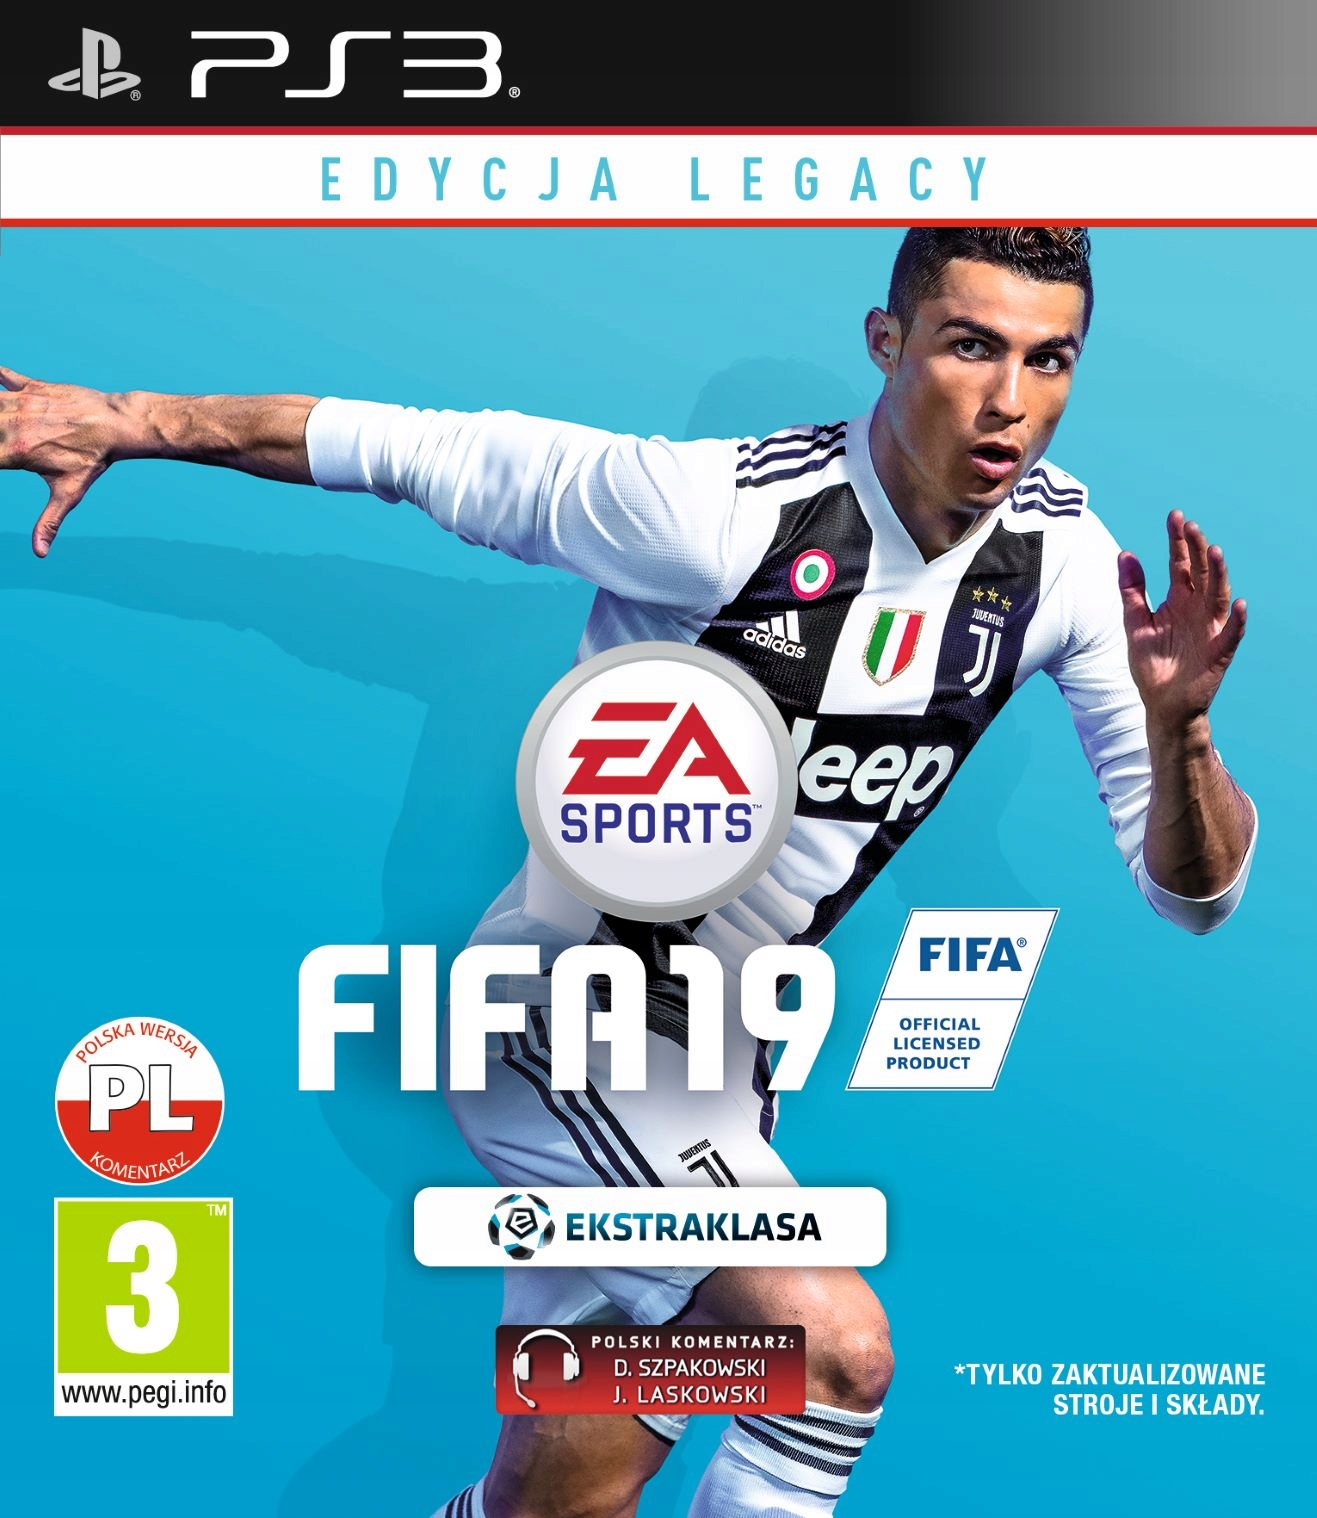 PS3 320gb slim + 23 GRY + CFW 4.82 FIFA19 RED DEAD